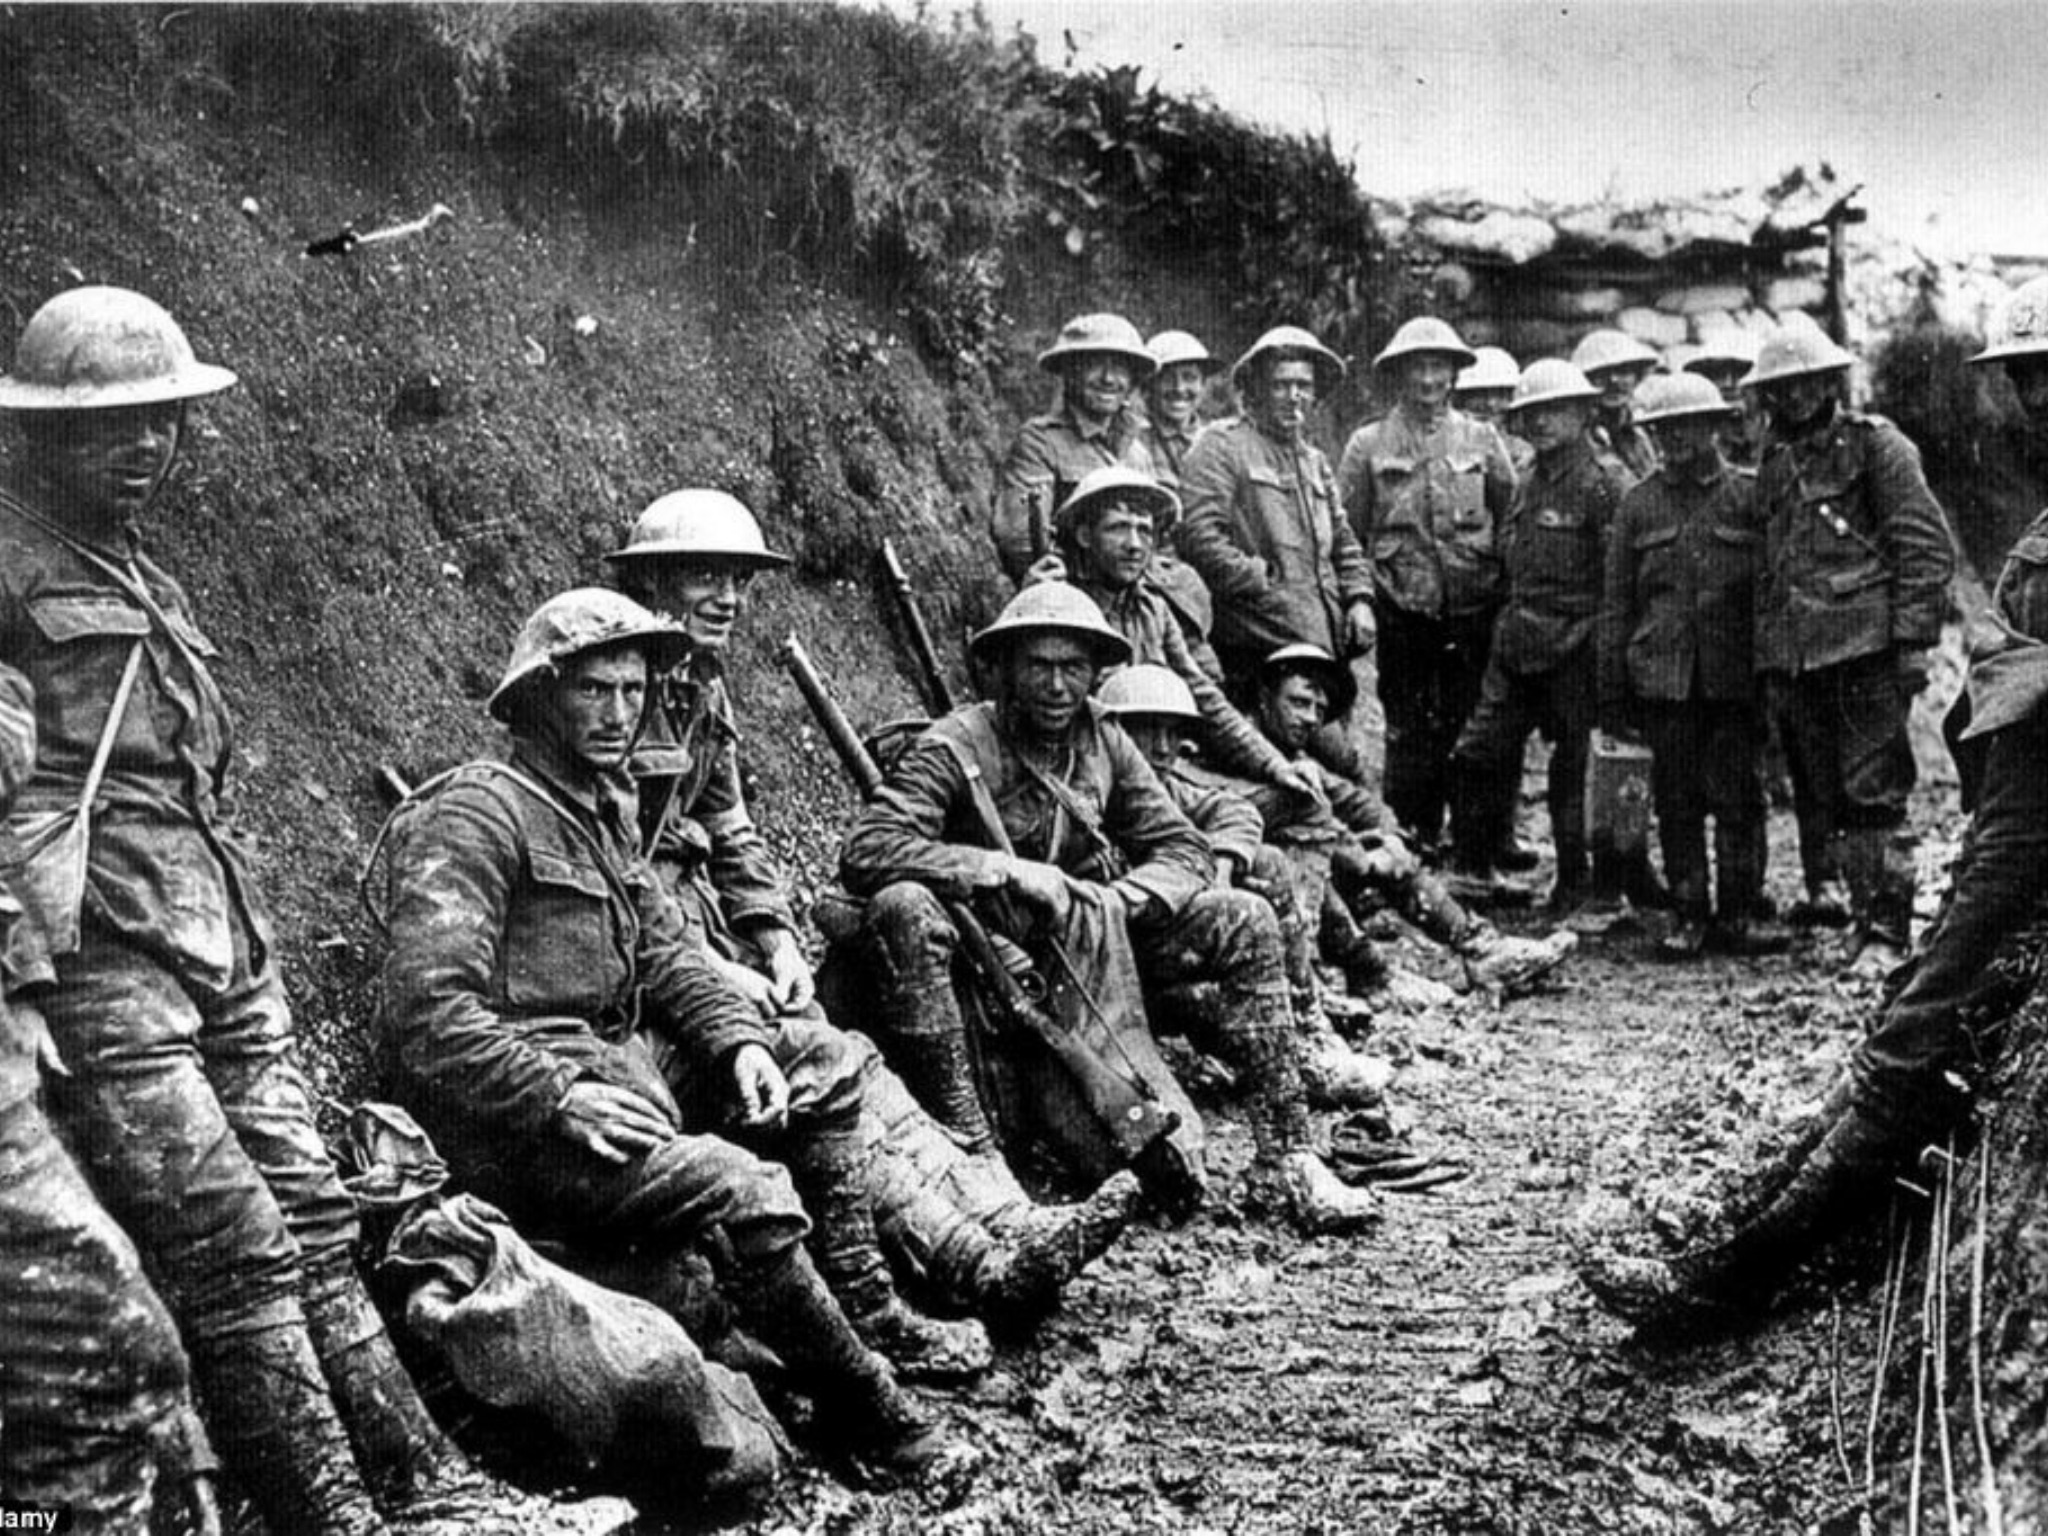 File:WW1 Trench Warfare.jpg - Wikipedia